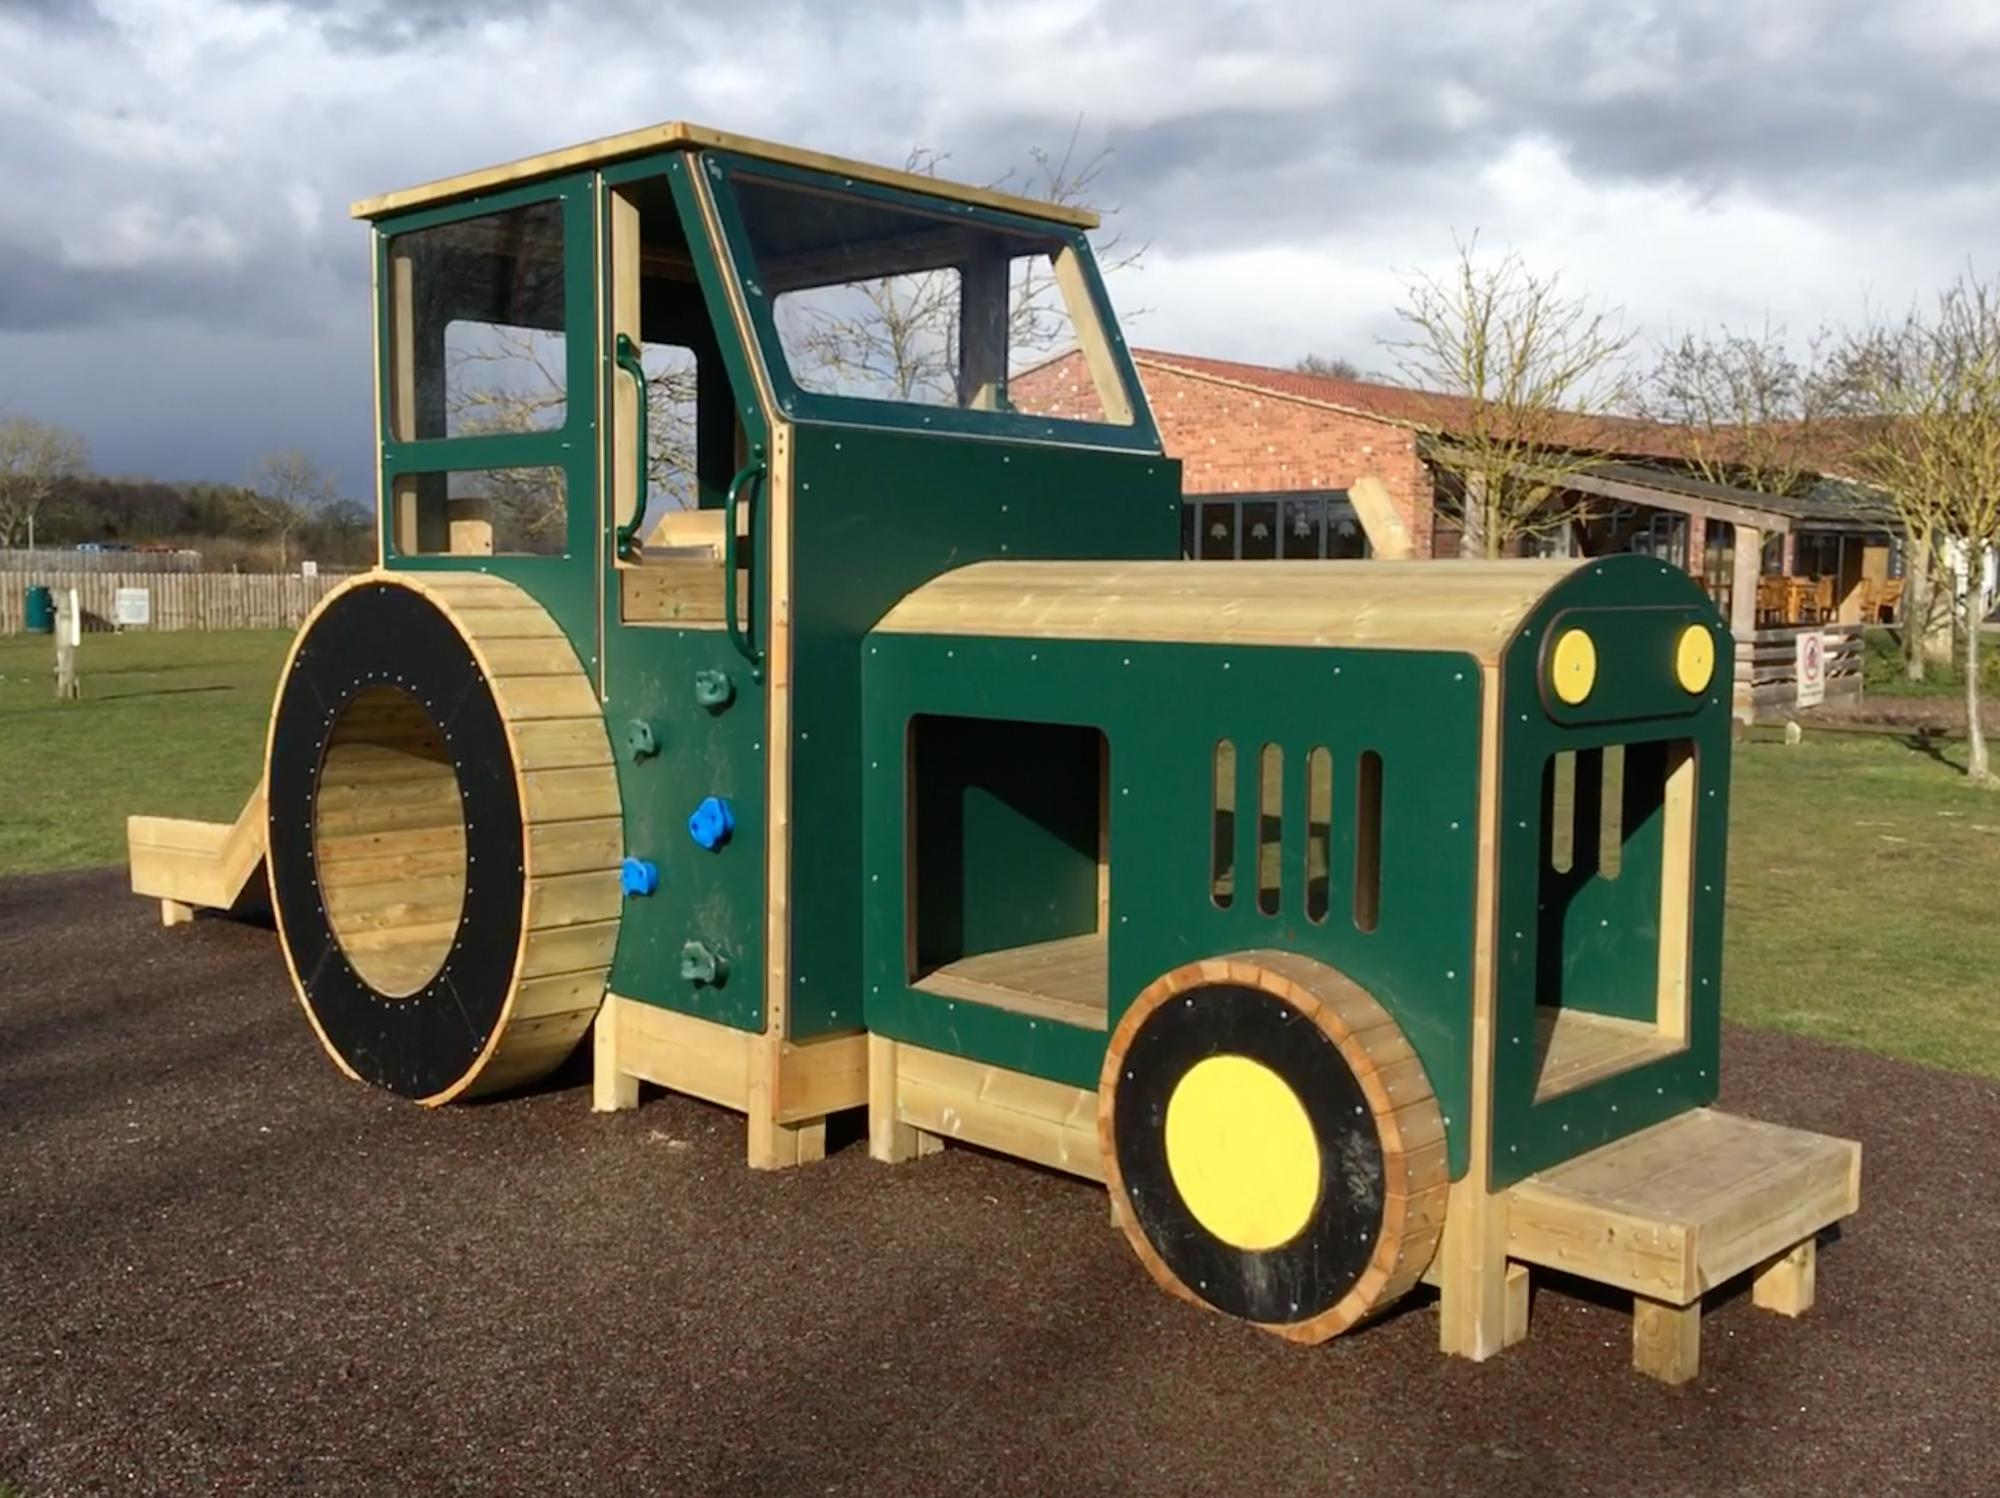 Playscheme - RP027 - The Big Green Tractor